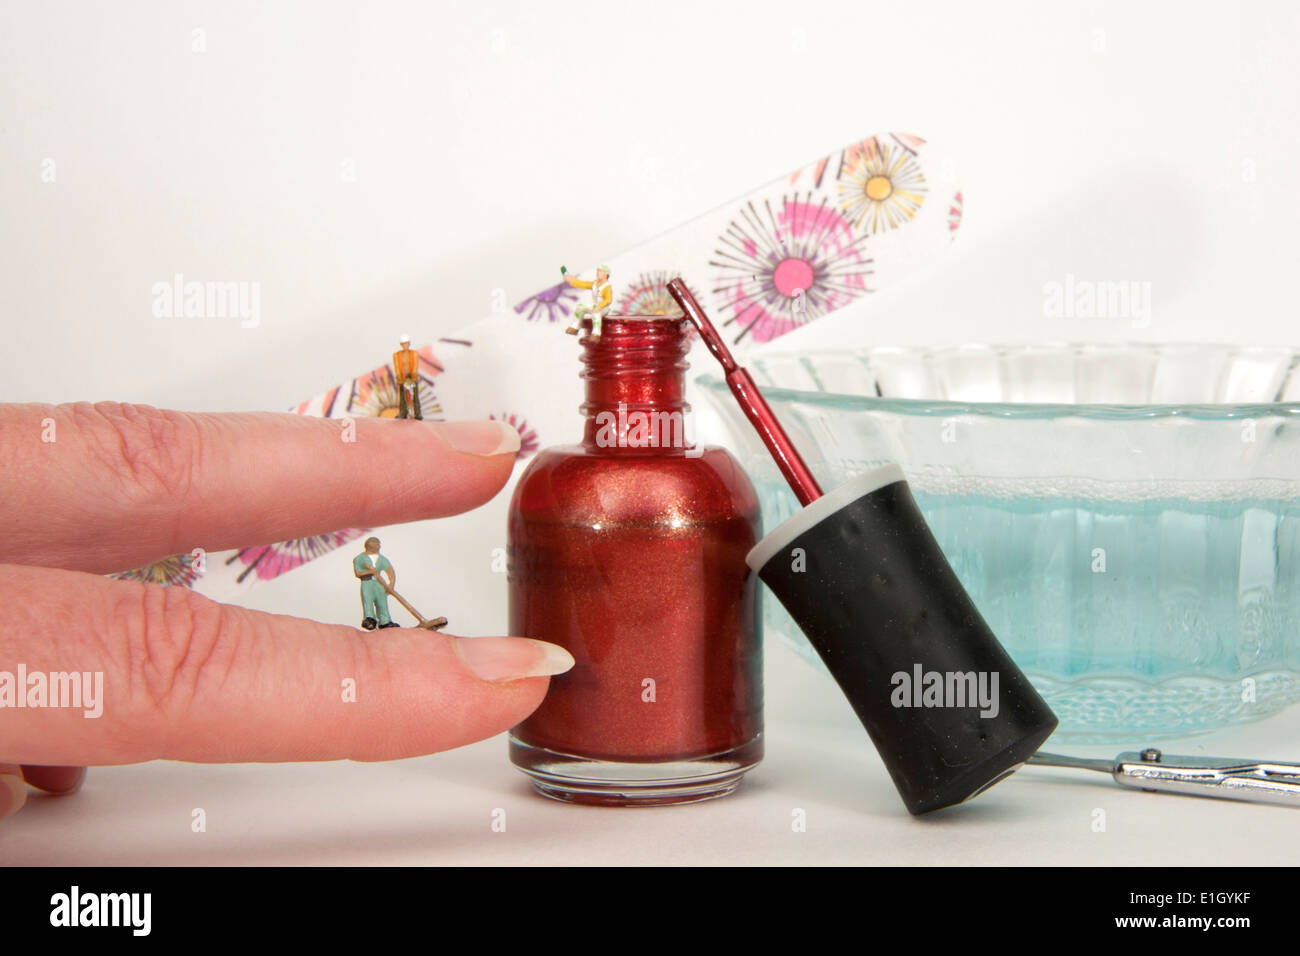 Hand with minature people giving a manicure with nail polish, emery board and soaking bowl in background. - Stock Image